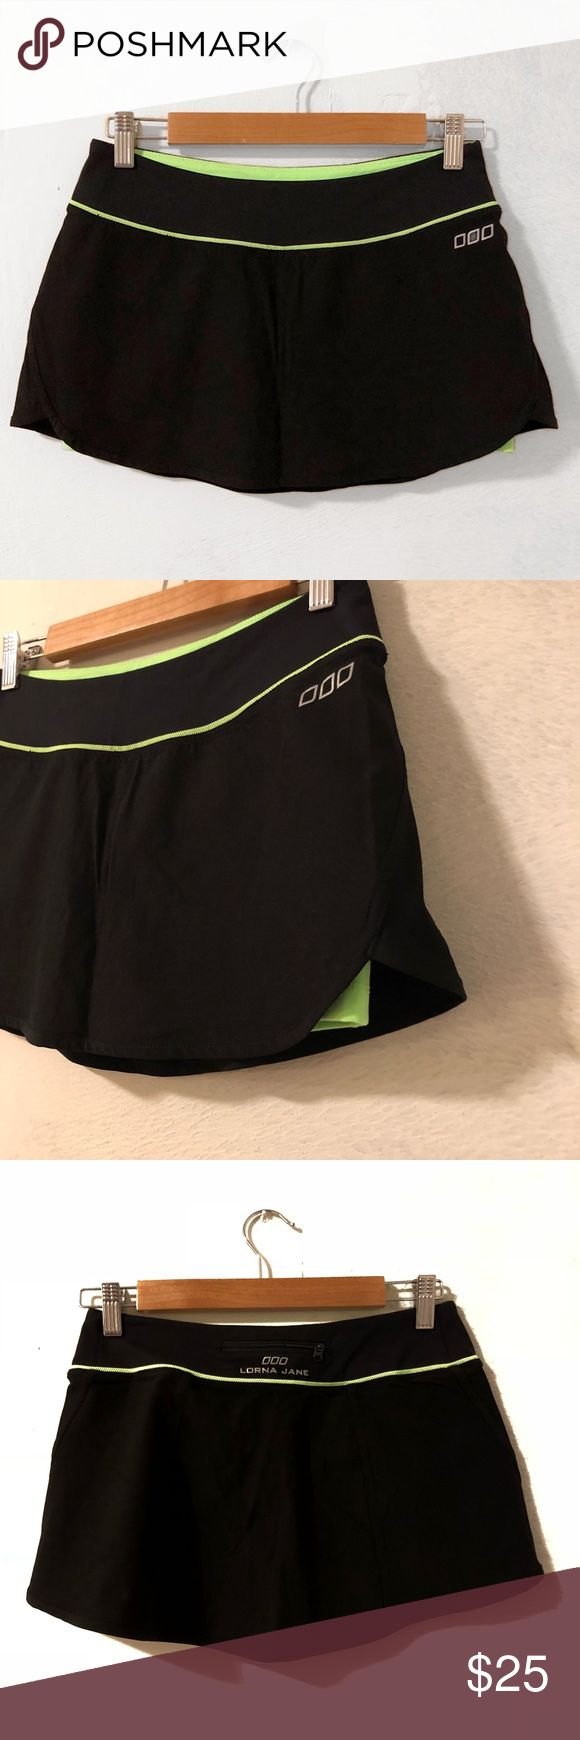 "Lorna Jane Skirt Skort Athletic Lorna Jane Athletic Workout Tennis Skirt/Skort Black and bright neon green. Perfect condition.  cute tennis skort with neon green shorts underneath.  I don't know what size this is and cannot find a size tag anywhere.  (a friend gave me this to sell). It is about the same size as a 4 in Lululemon.  So it's a 2-4 or XS if I had to guess. waist flat unstretched is 13"". Length is 10.5"".  The shorts liner has an inseam of 3"". Reflective details, zip back pocket…"